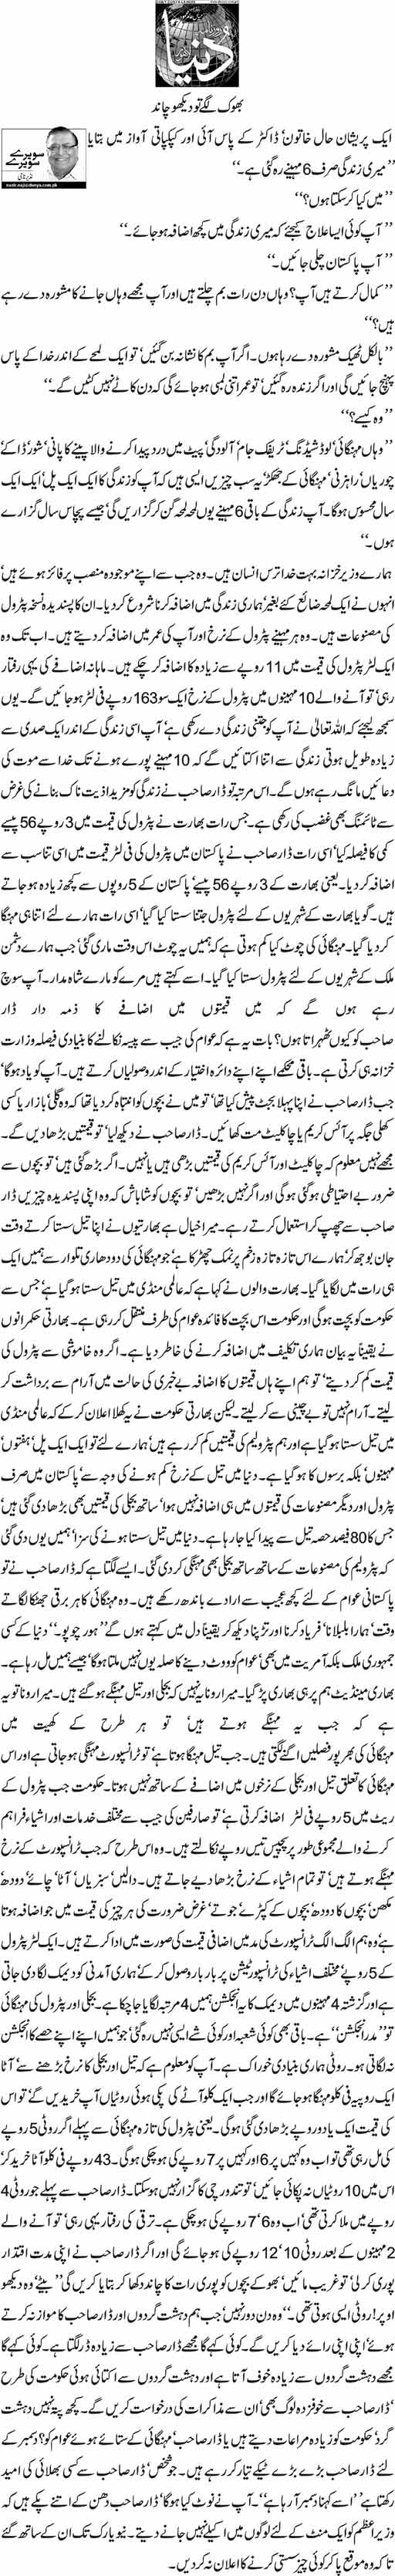 Bhook Lage To Daikho Chand | Nazir Naji | Daily Urdu Columns